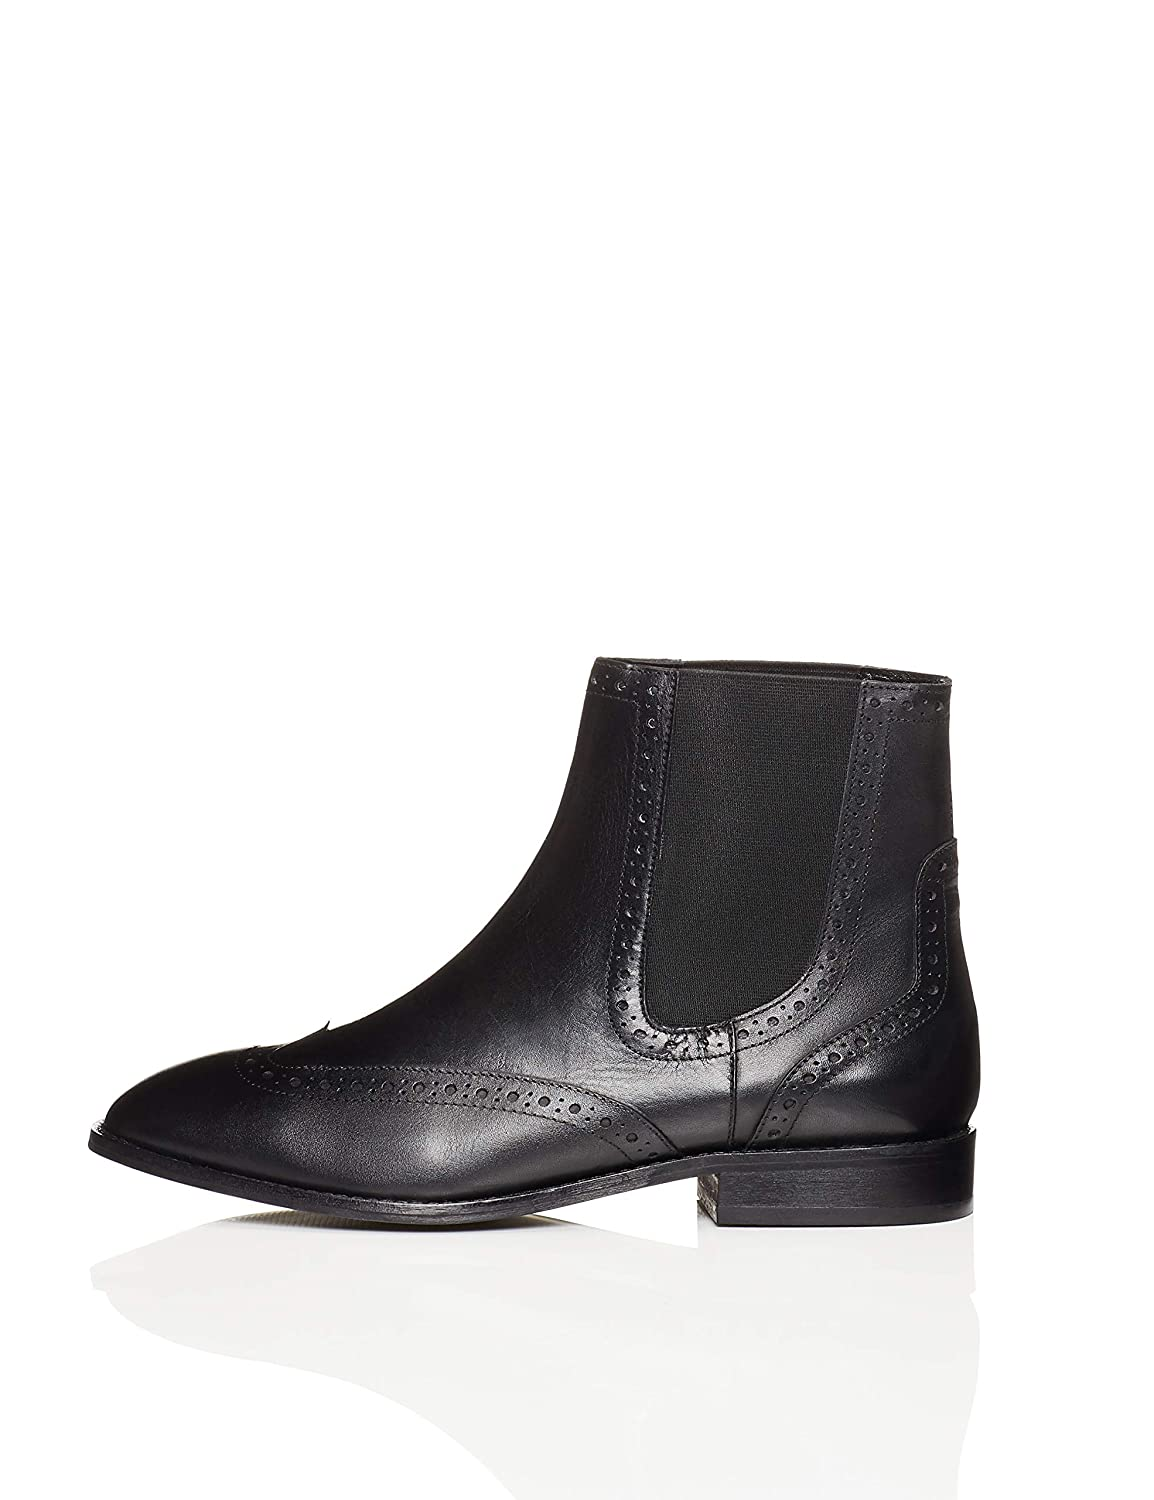 b58bd511266e4 FIND Botines Tipo Brogue Mujer ANDY-1W4-021